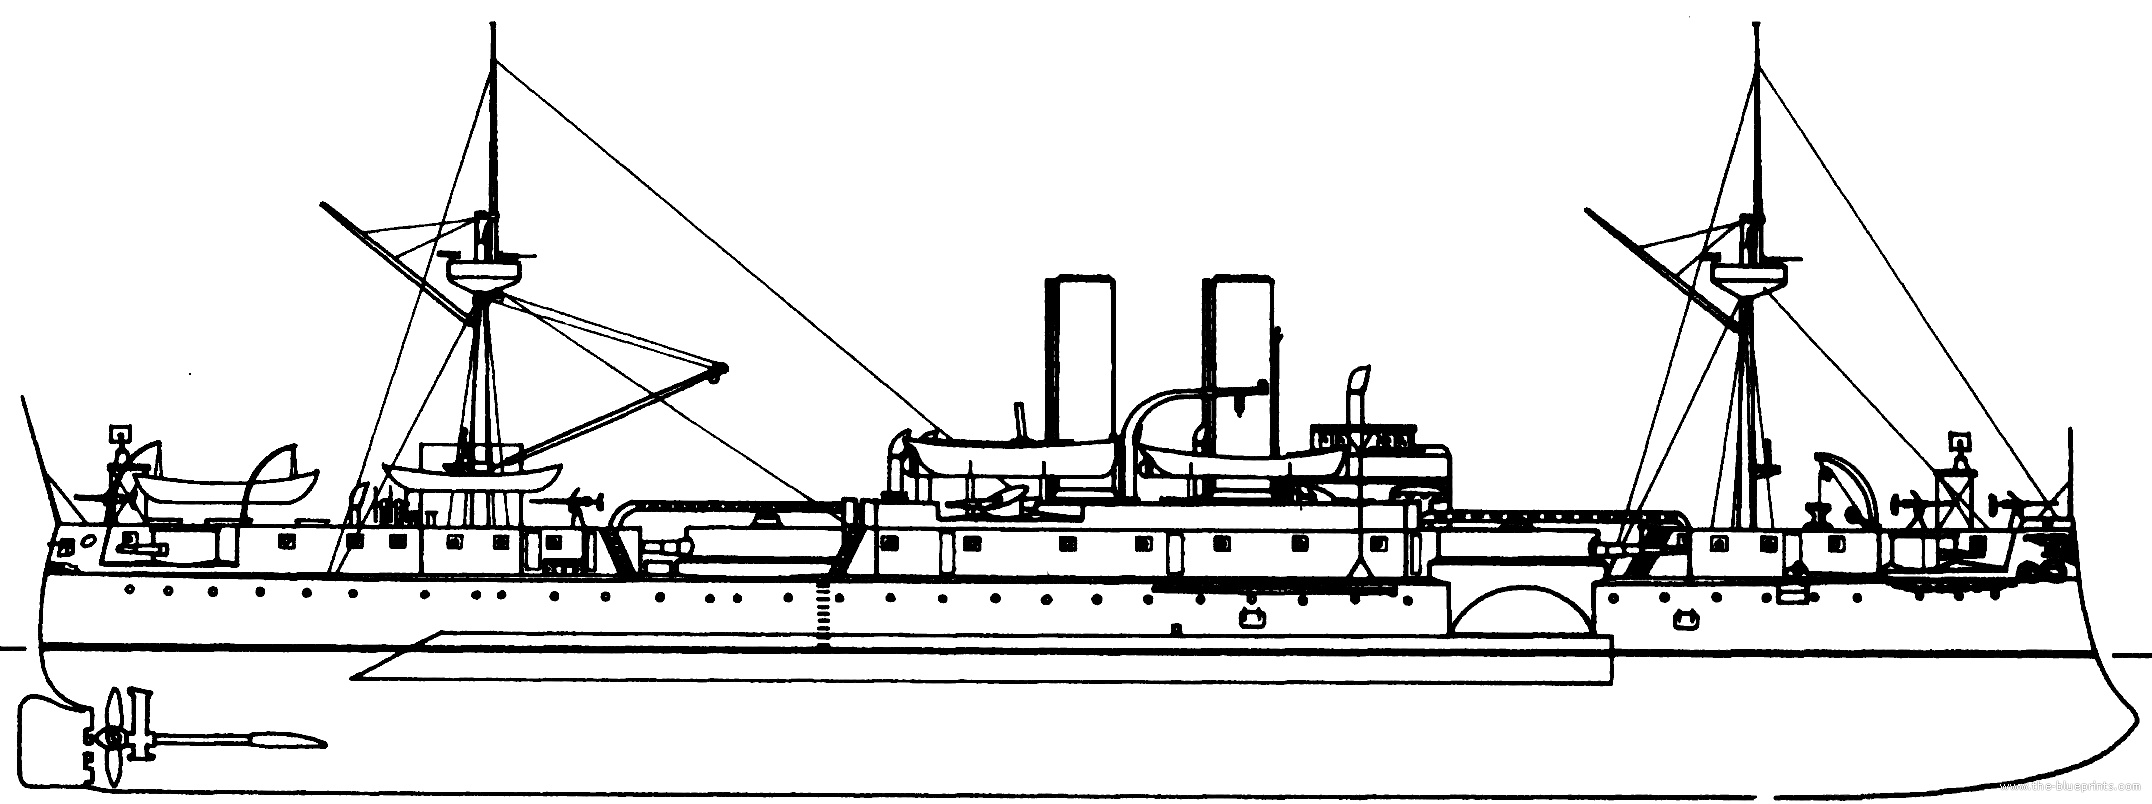 uss maine diagram